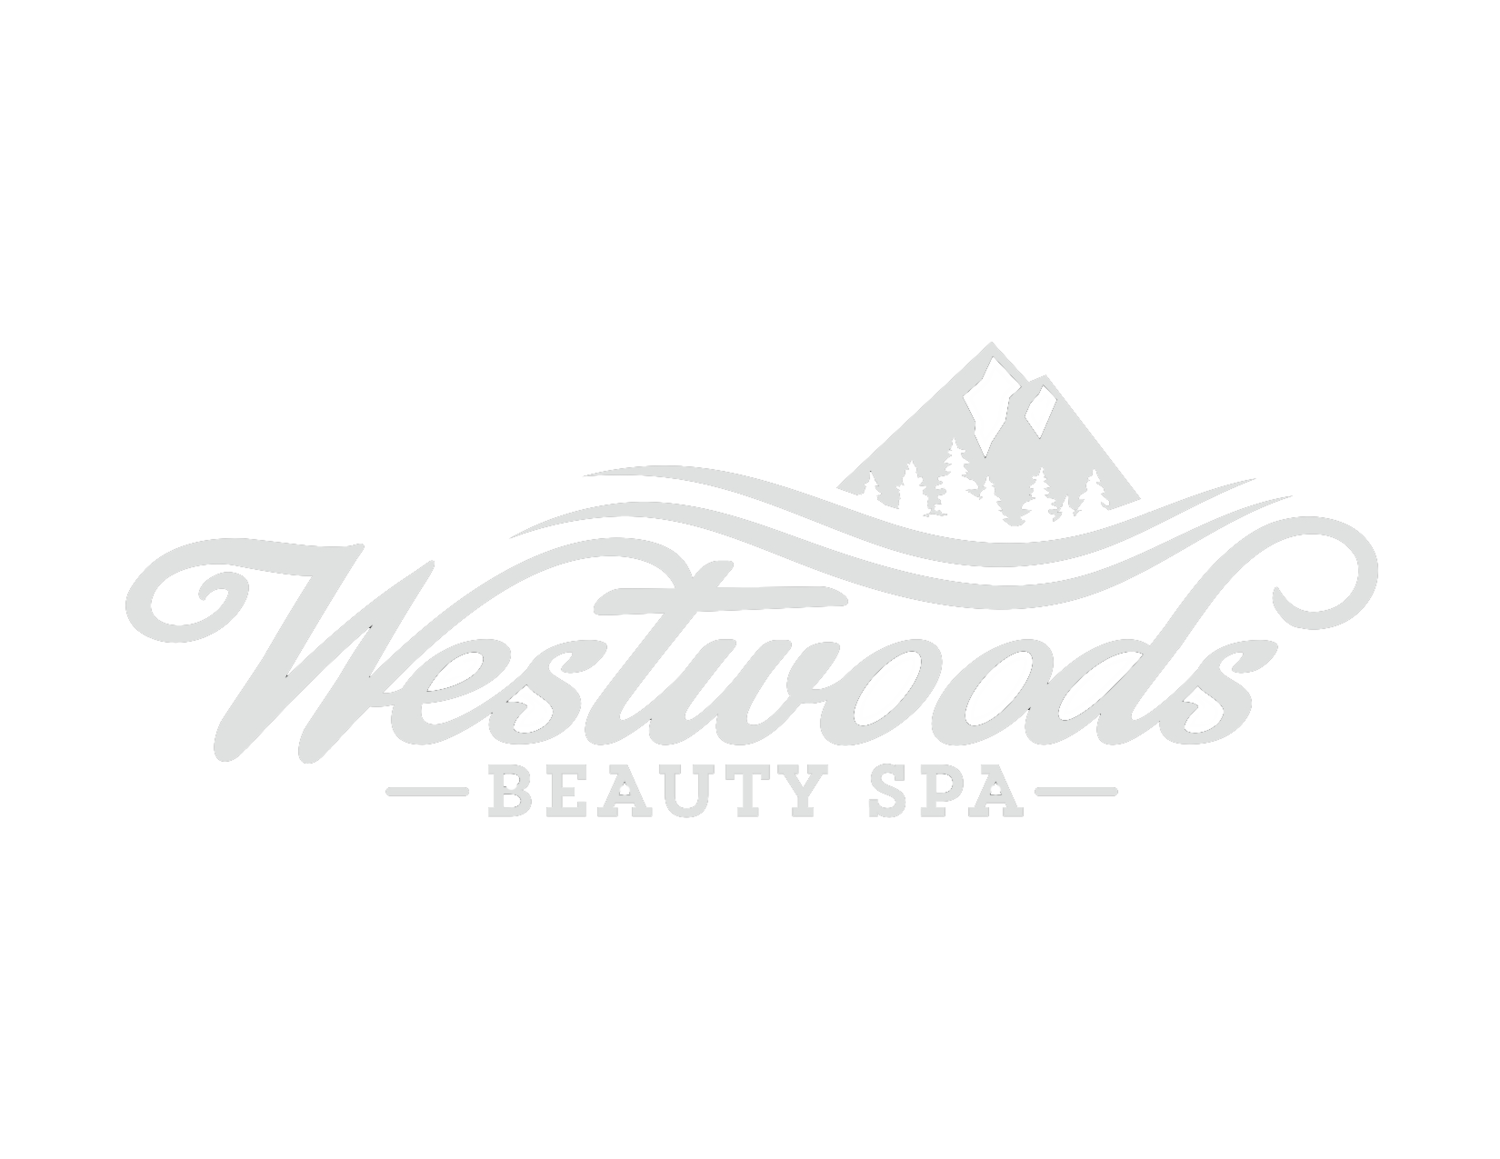 Westwoods Beauty Spa